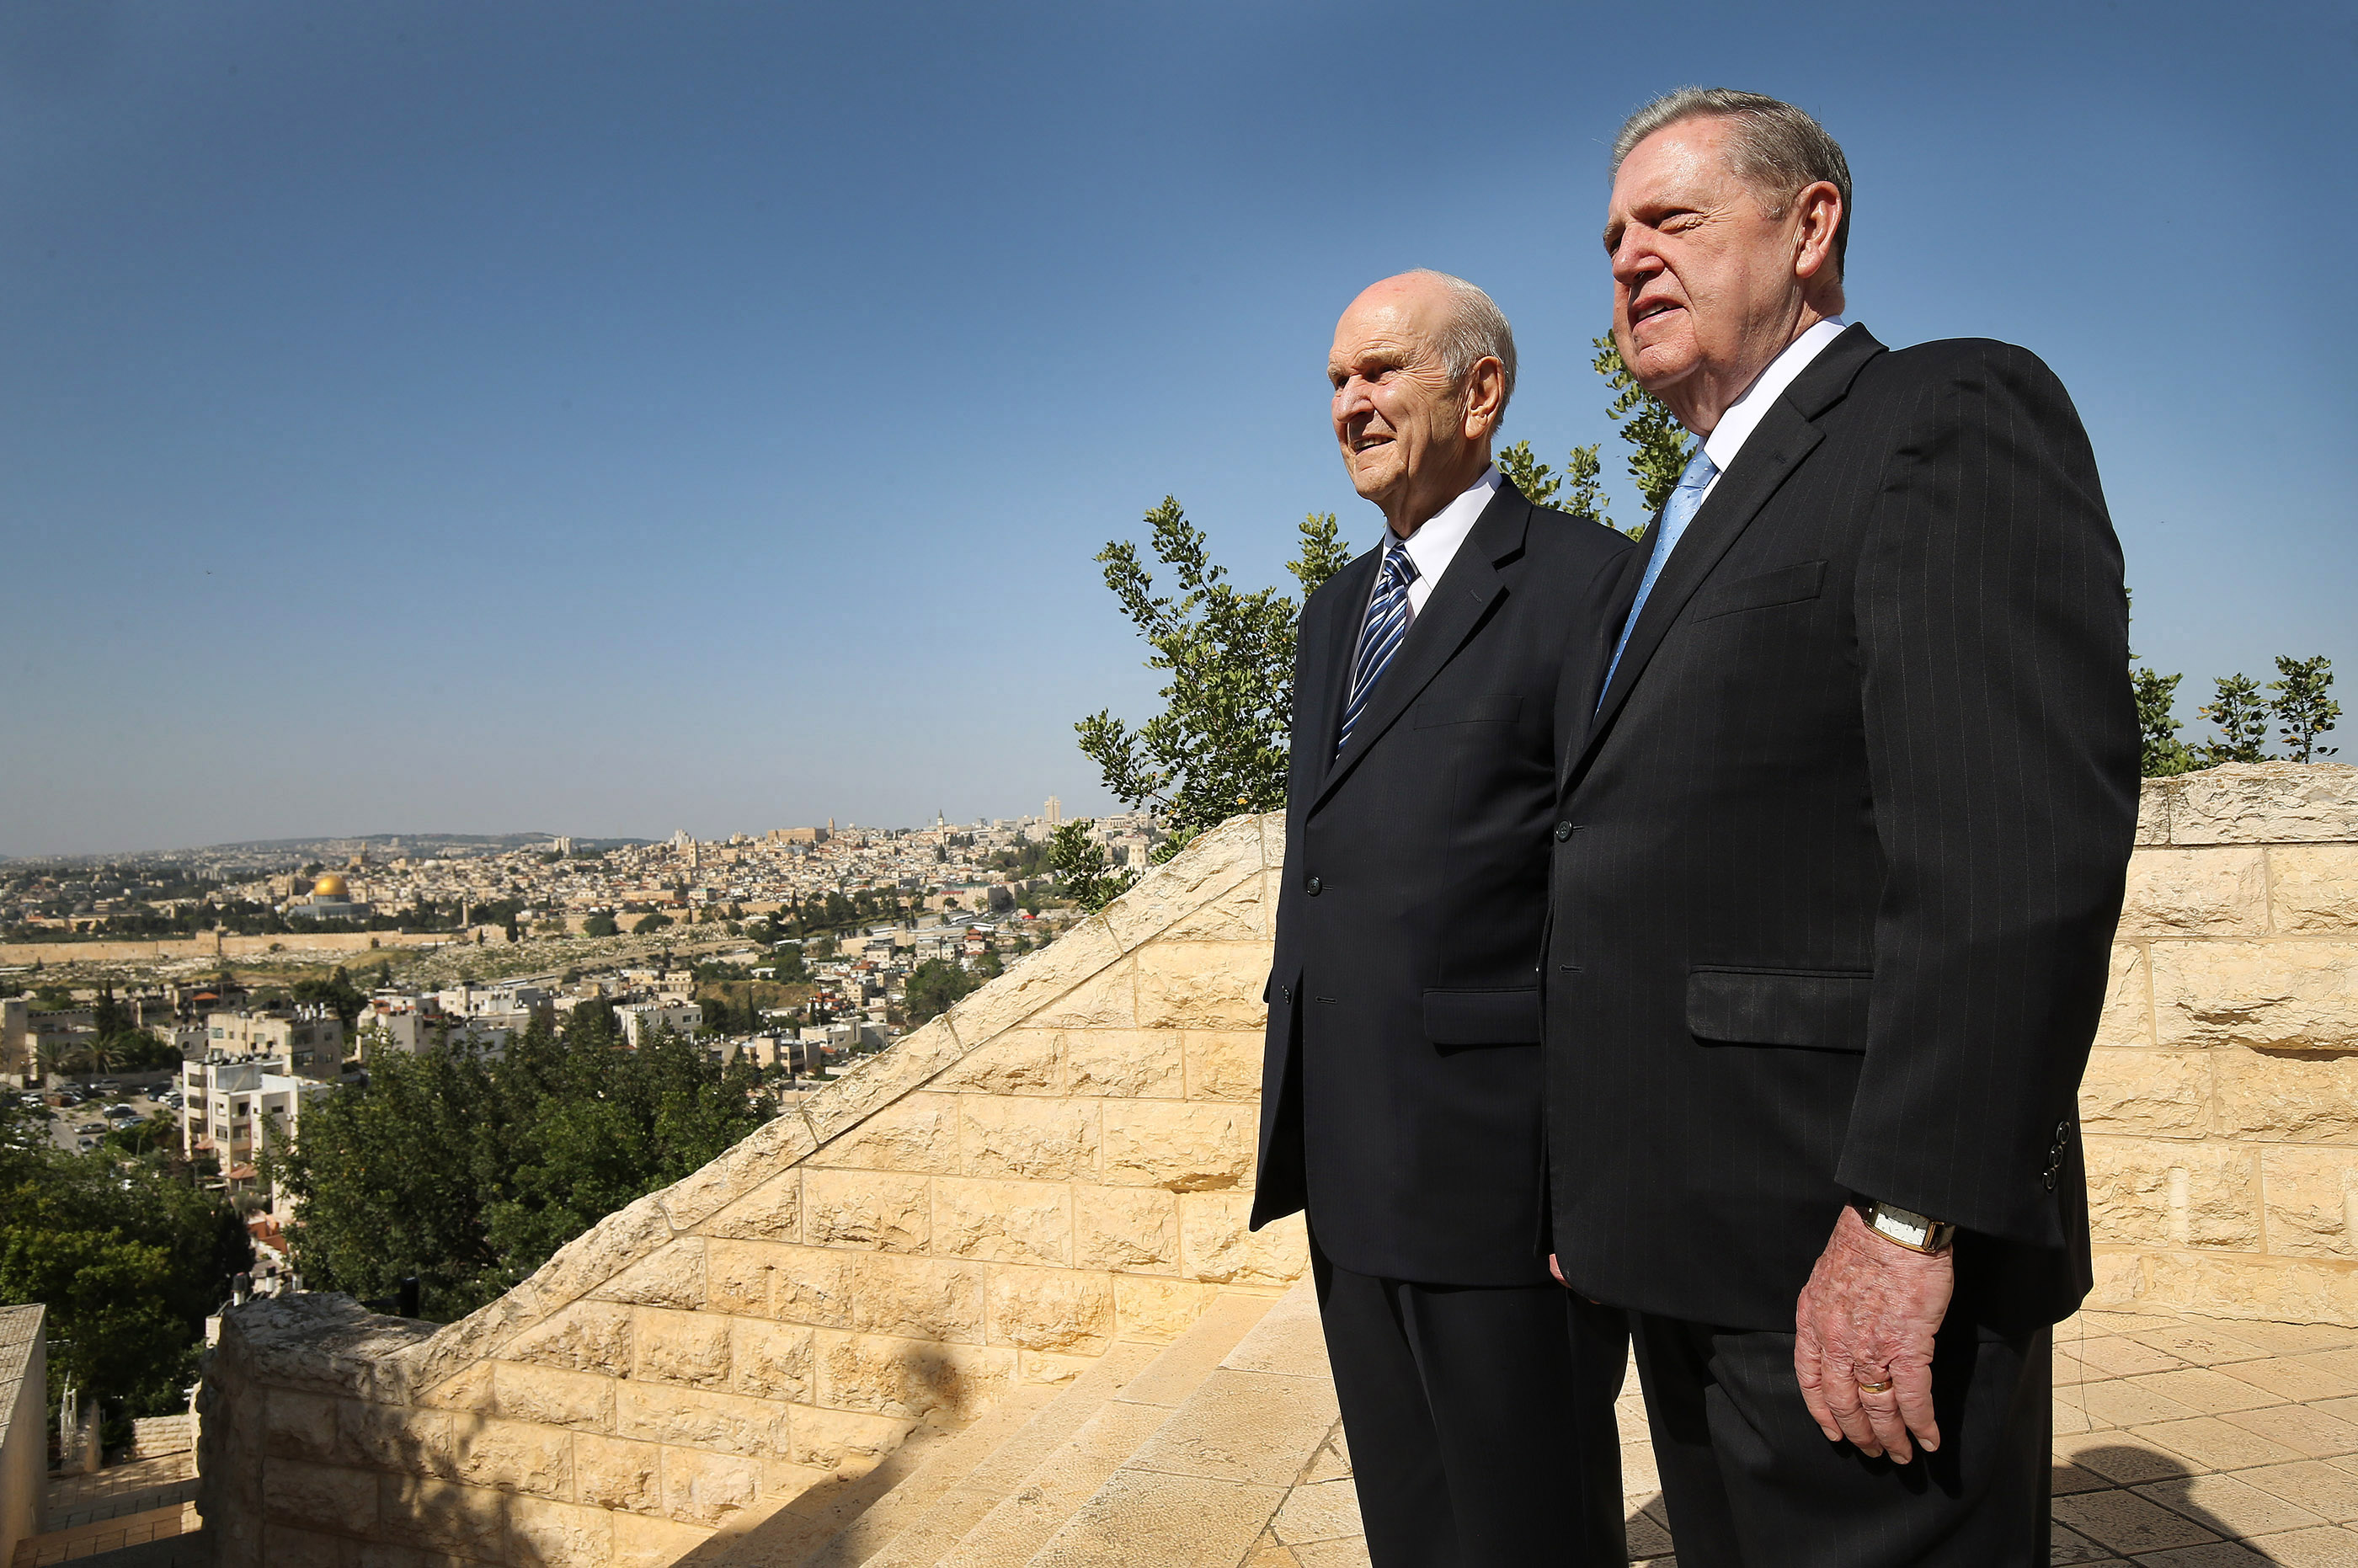 President Russell M. Nelson, left, and Elder Jeffrey R. Holland look over the view at the BYU Jerusalem Center in Jerusalem on April 14, 2018. Elder Holland spoke of the miracles that made the BYU Jerusalem Center possible during the 30th anniversary of the dedication of the center on Oct. 11 on the BYU campus in Provo, Utah.